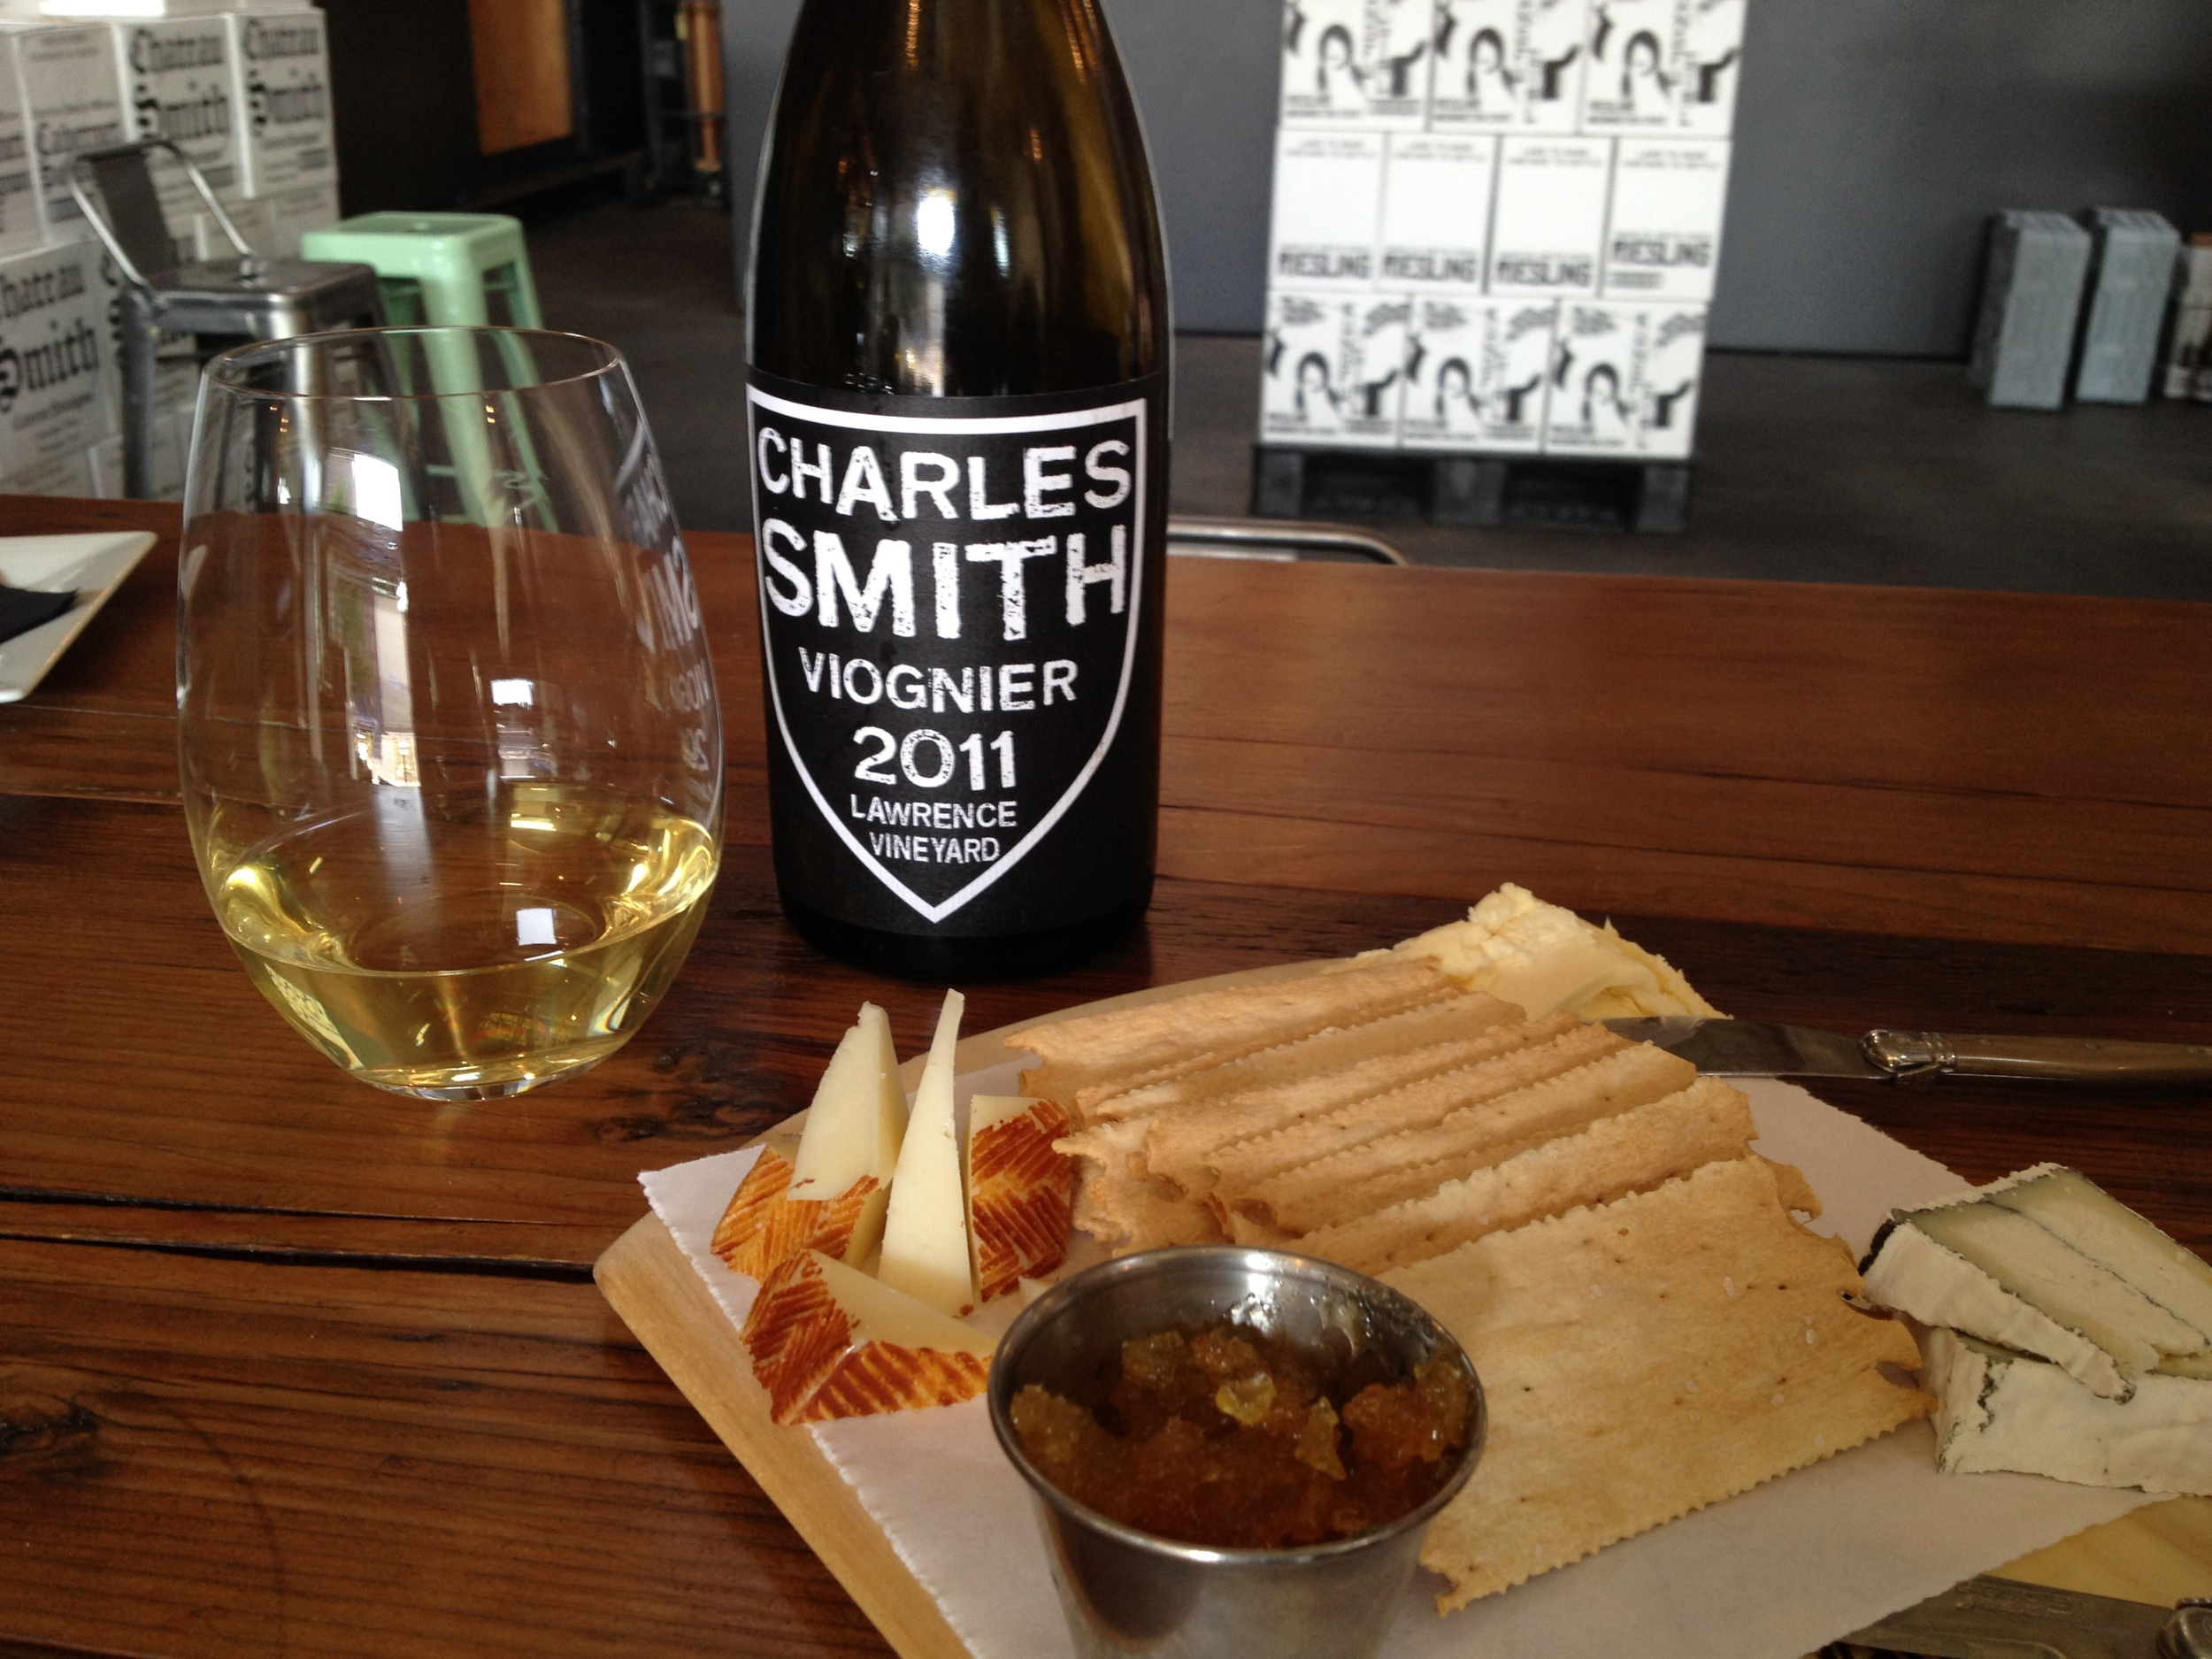 Near-Condrieu-like awesomeness in this WA Viognier. Great cheese partner.